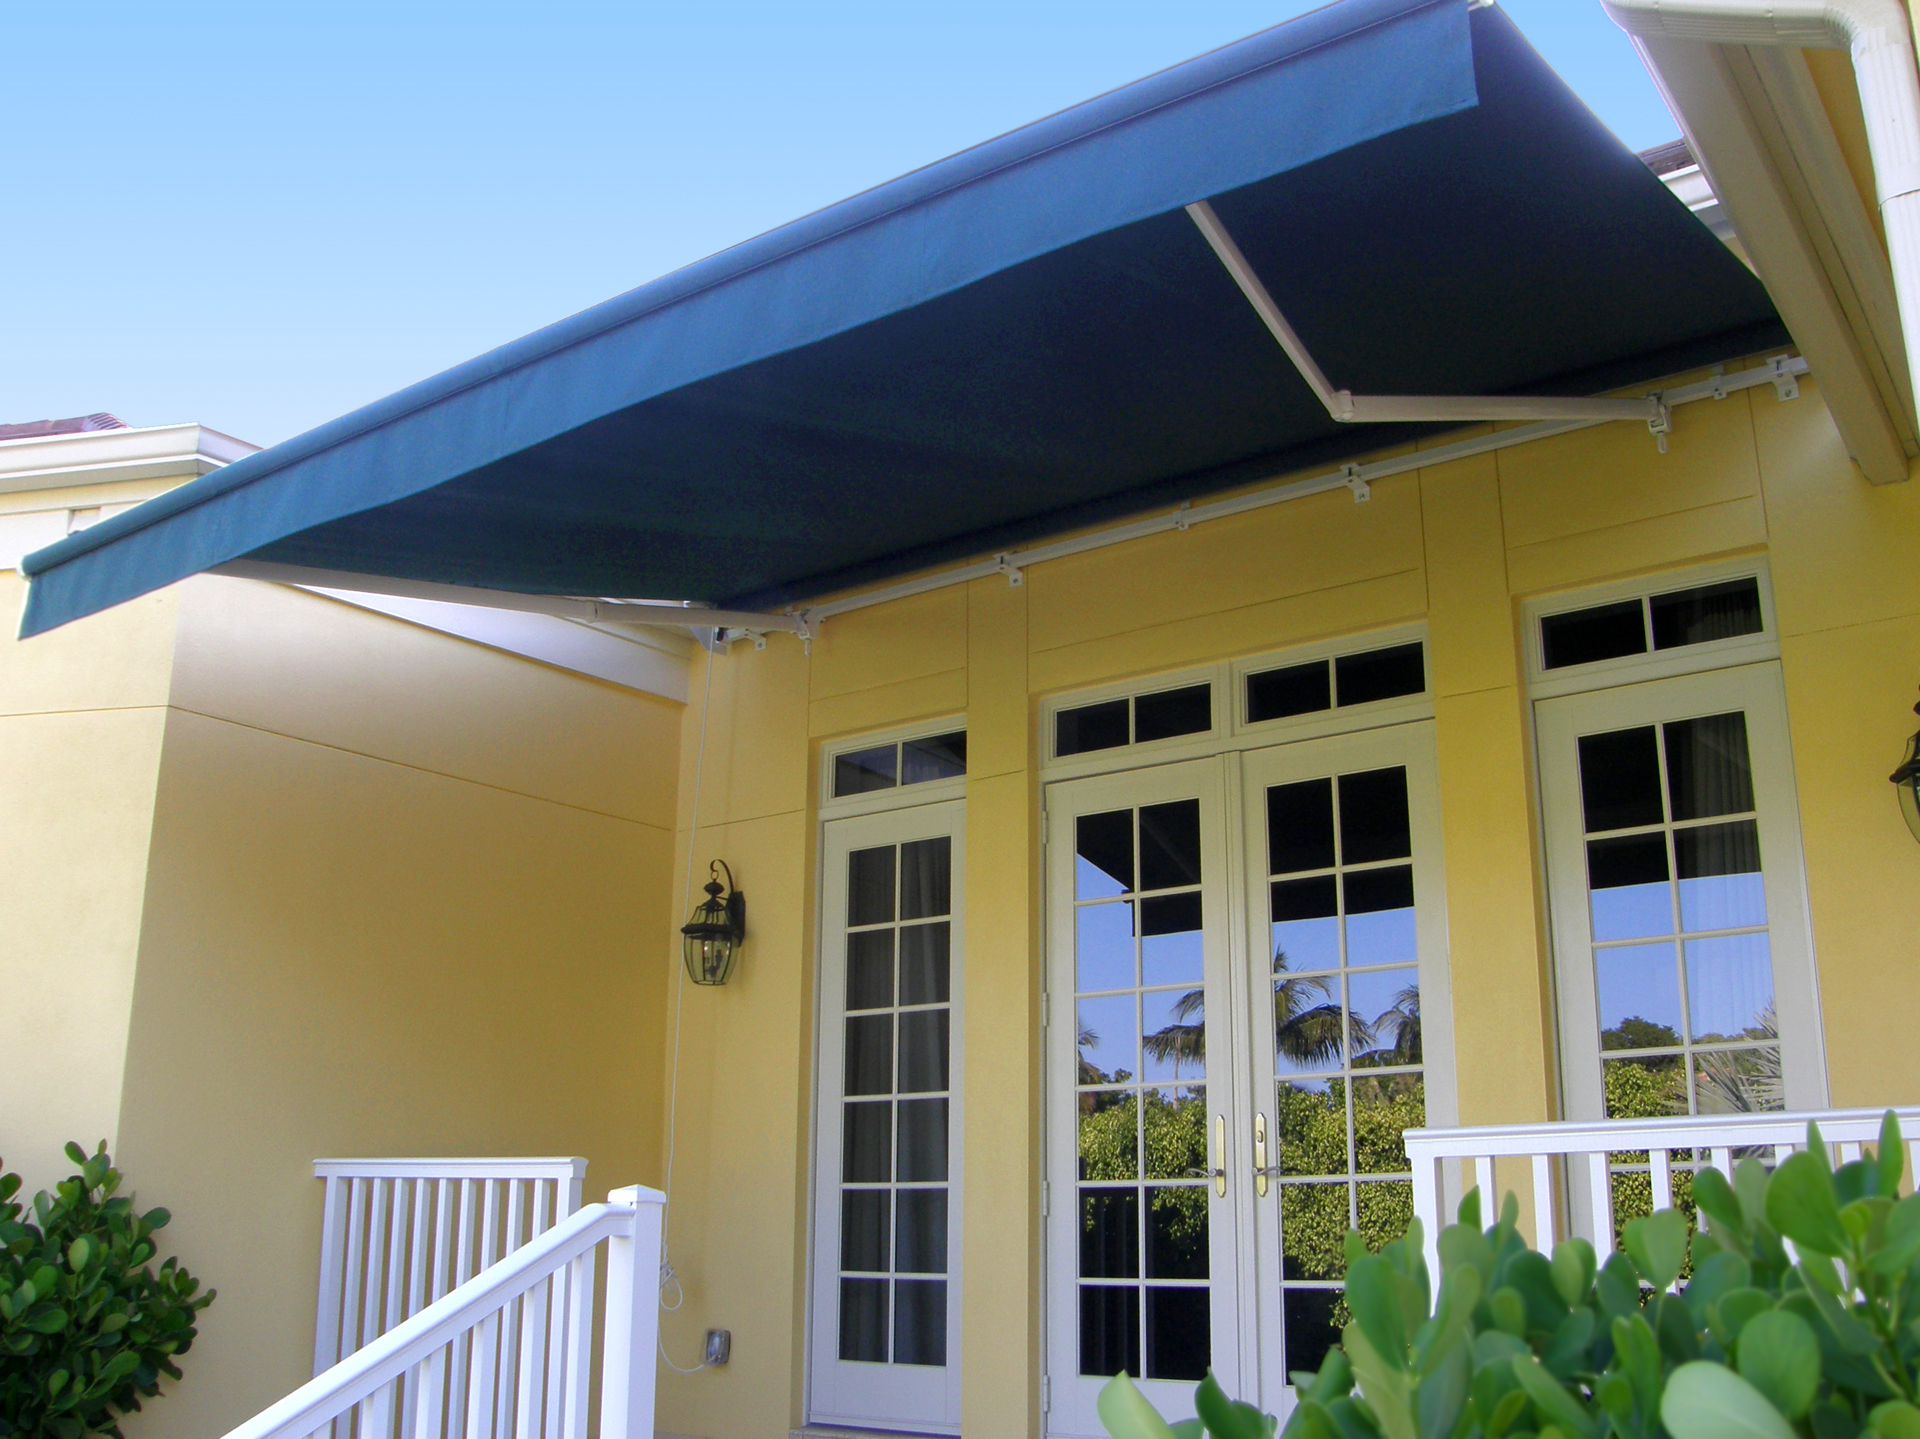 retractable_awning_09.jpg